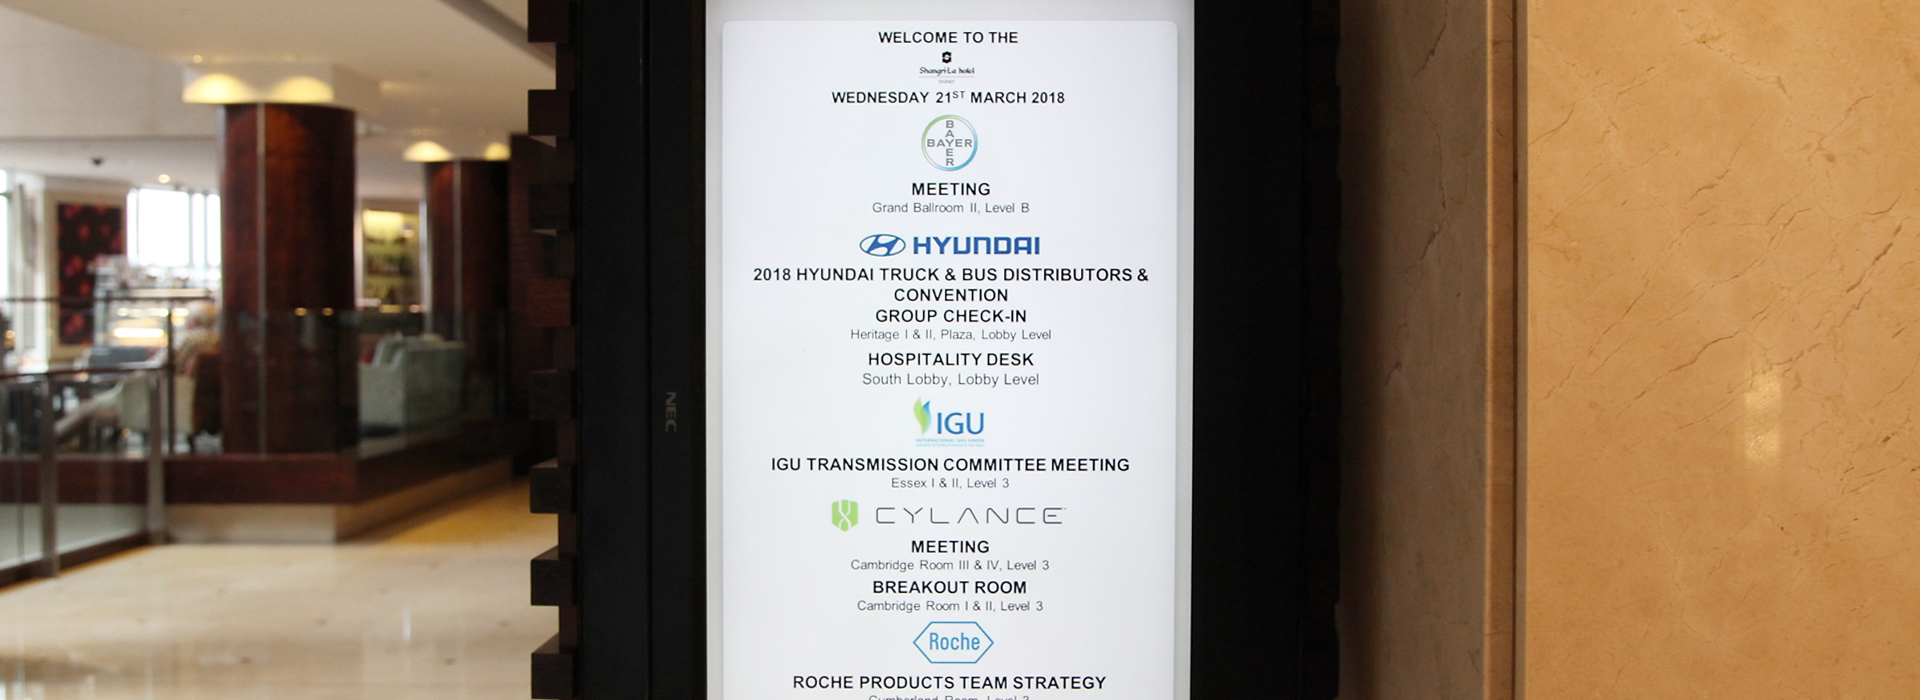 Hyundai Truck and Bus Distributors Convention 2018 Slider Image5